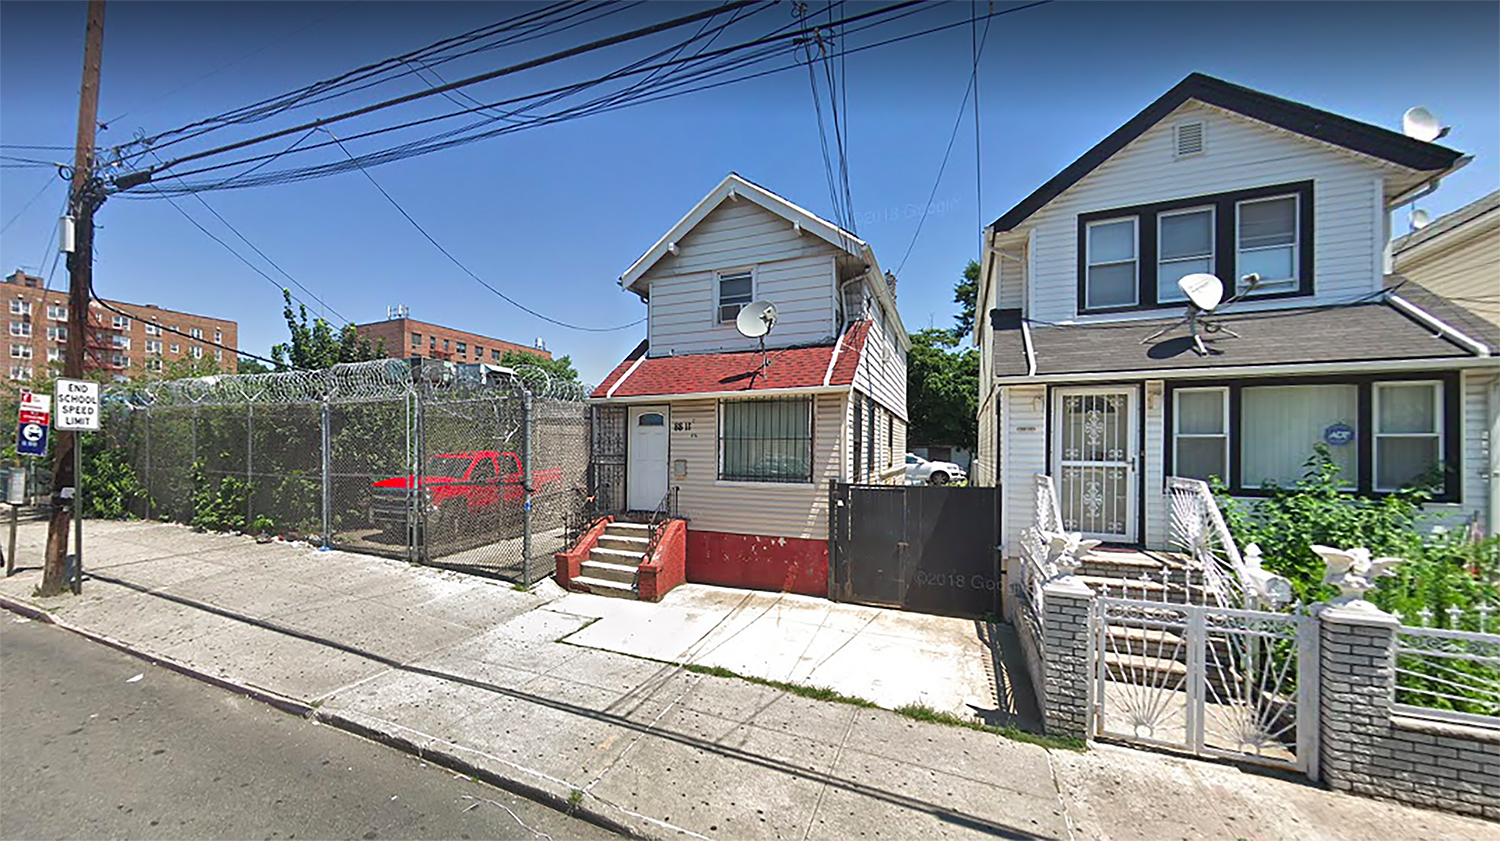 88-11 179th Place in Jamaica, Queens